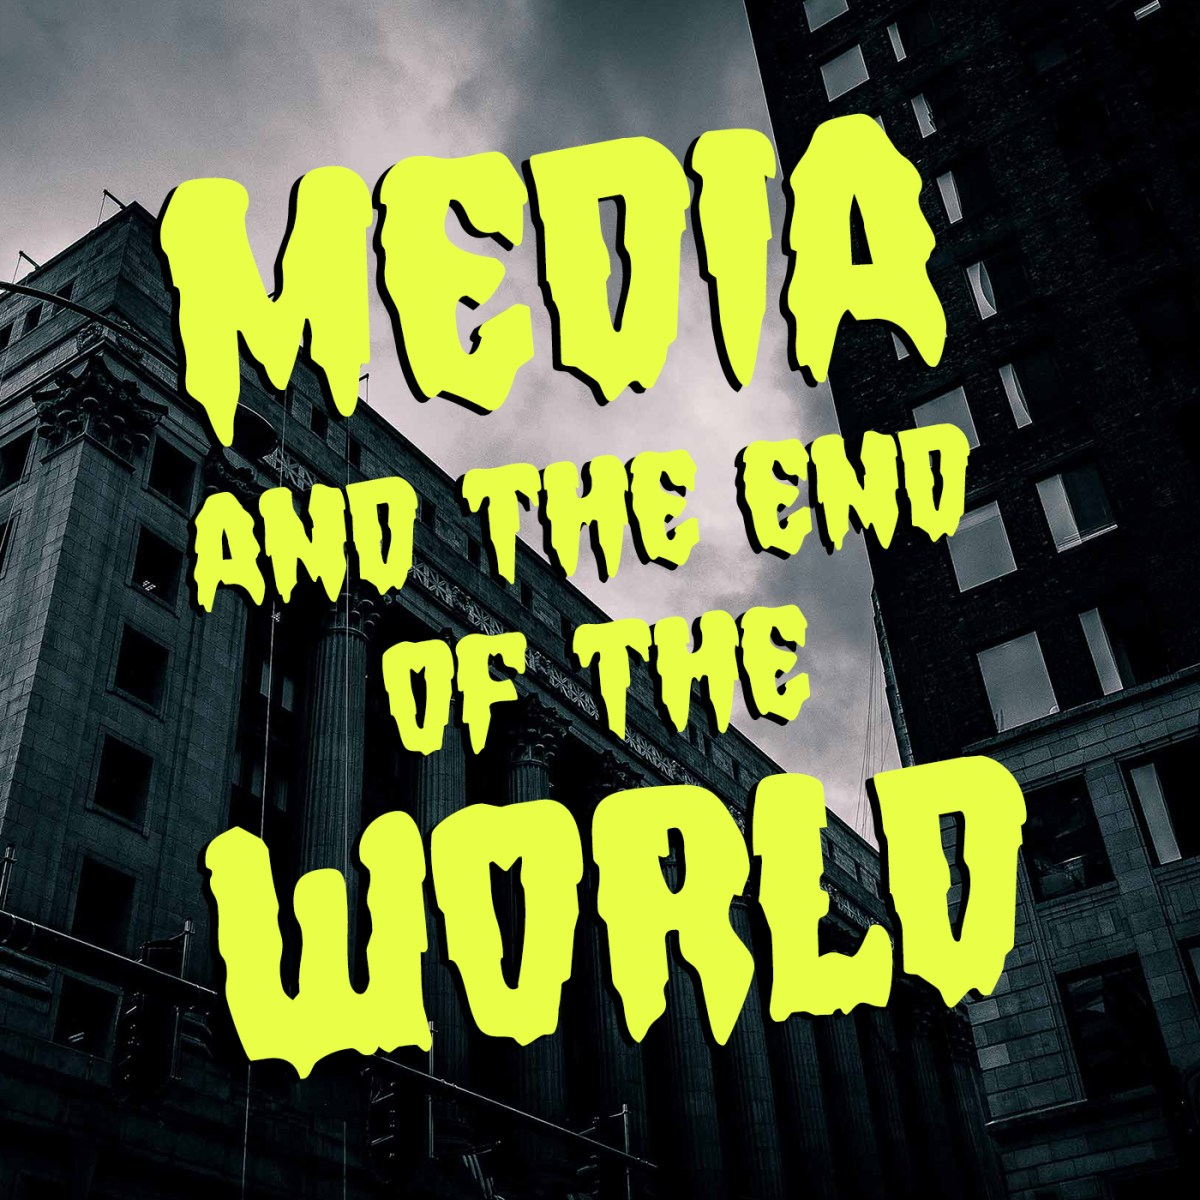  Episode 044 – Makerspaces and Alex Trebek | Media and the End of the World Podcast